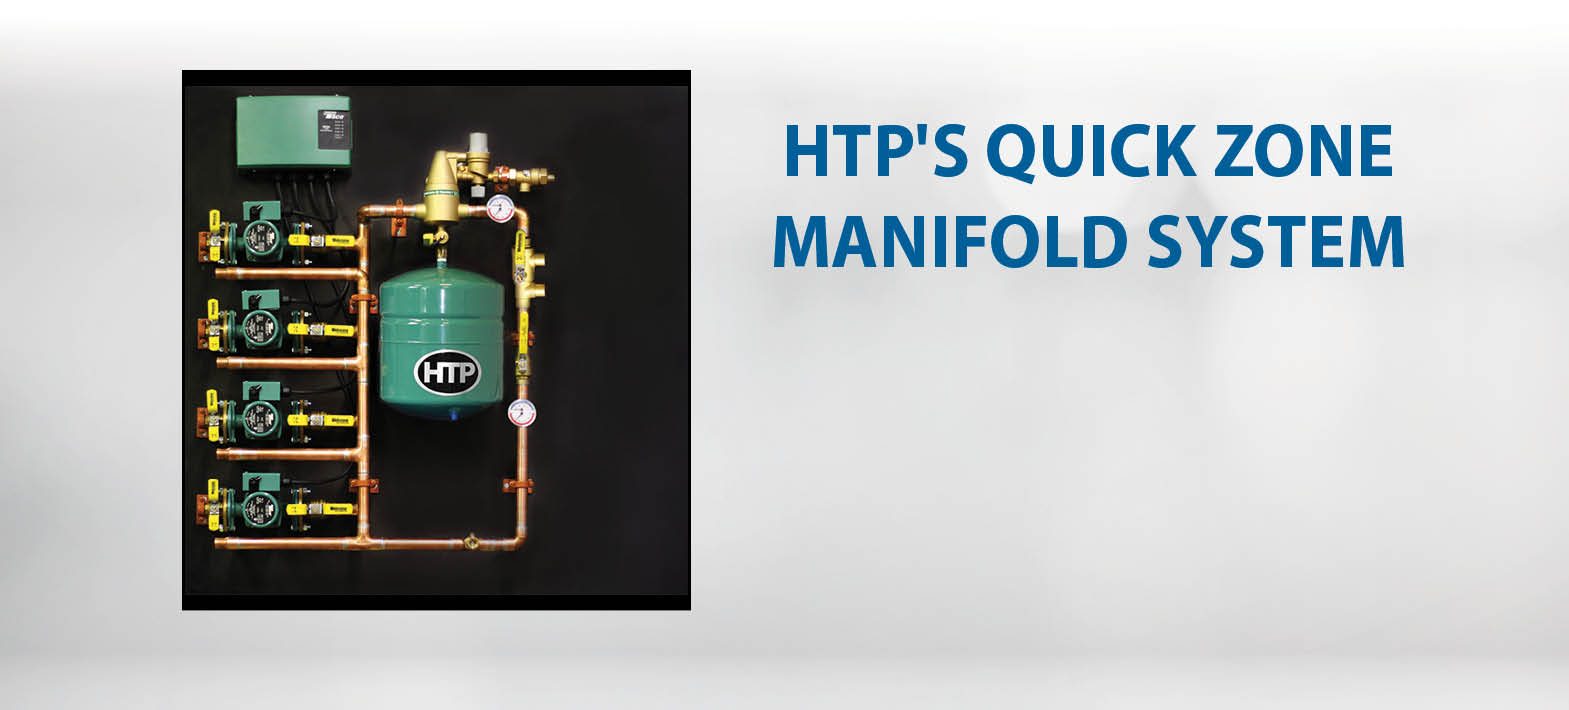 hight resolution of quick zone manifold system